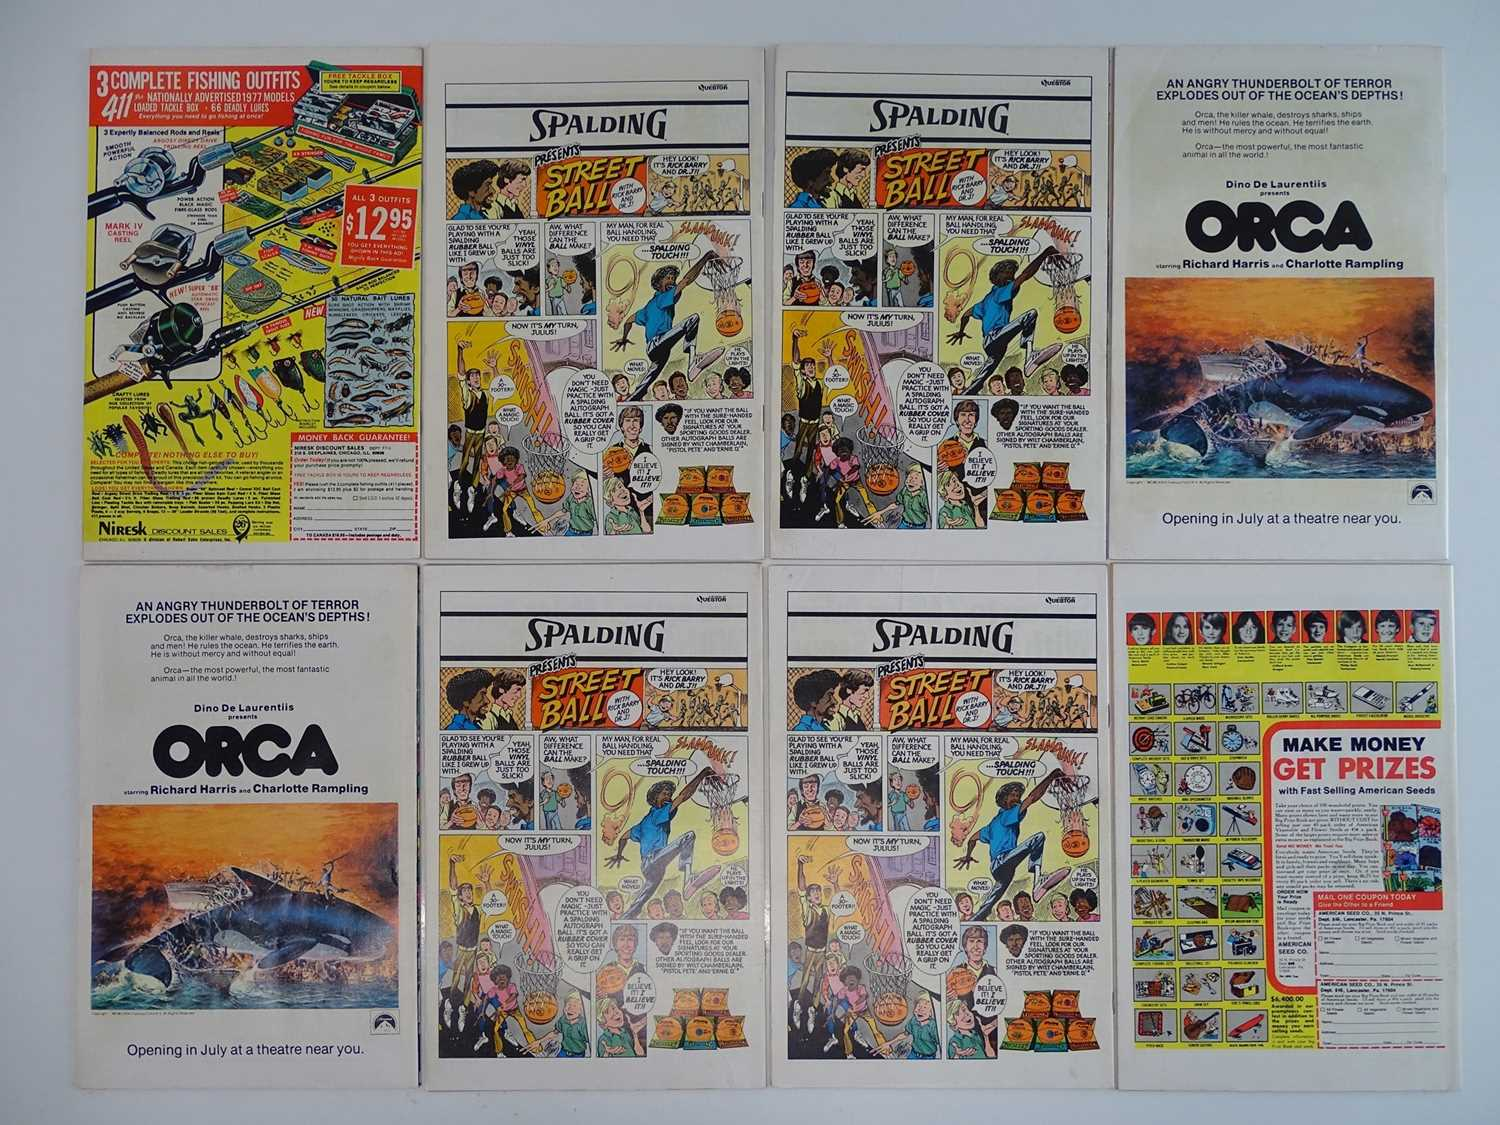 THOR #260, 261, 262, 263, 264, 265, 266, 269 - (8 in Lot) - (1977/78 - MARVEL - UK Price - Image 2 of 2